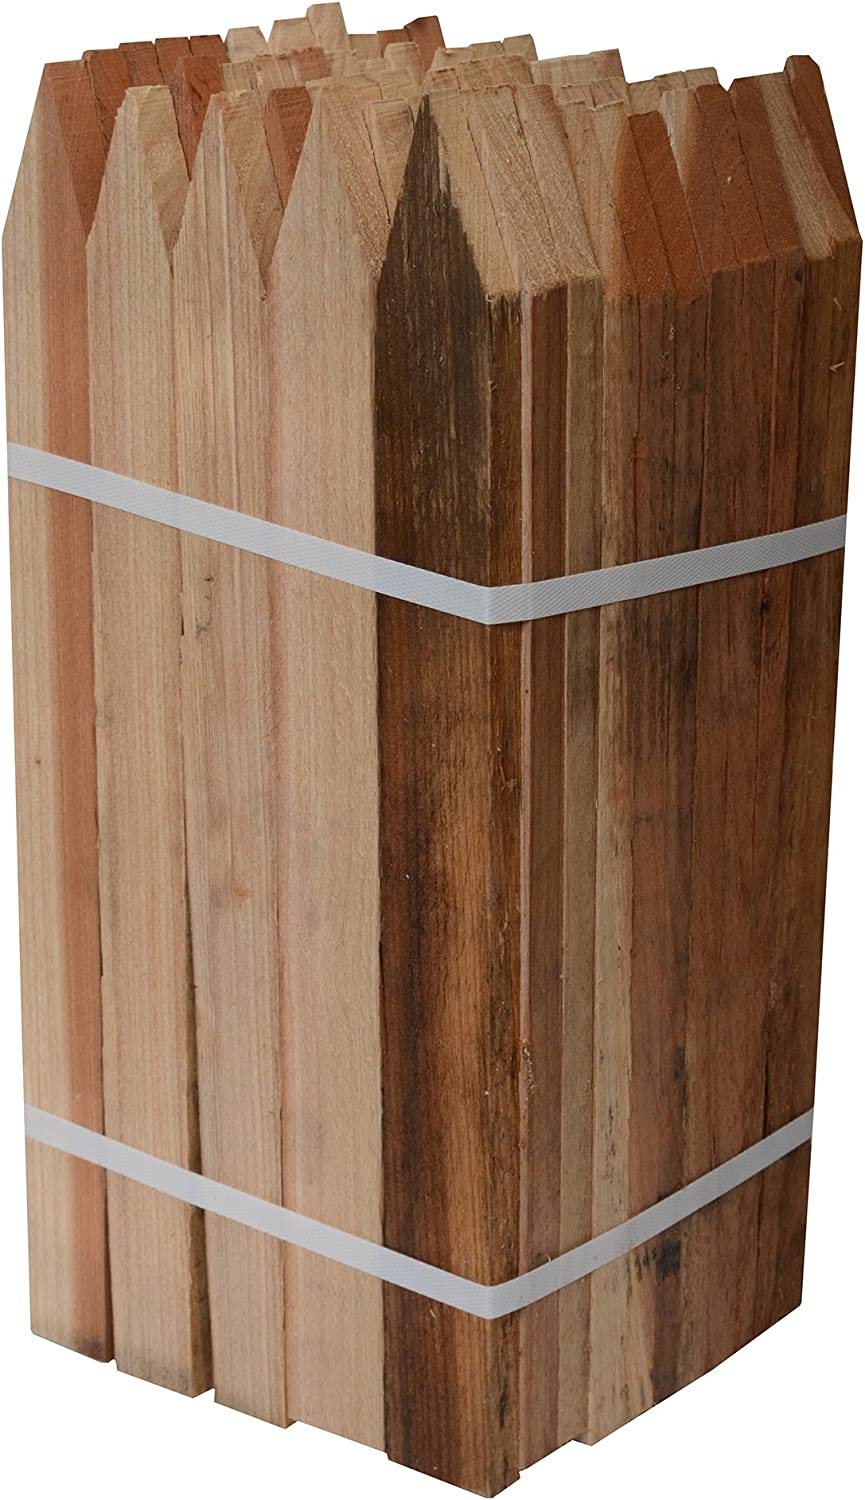 Easy-to-use Bond Manufacturing 442 18-Inch Stakes Garden Redwood 50-Pack Factory outlet